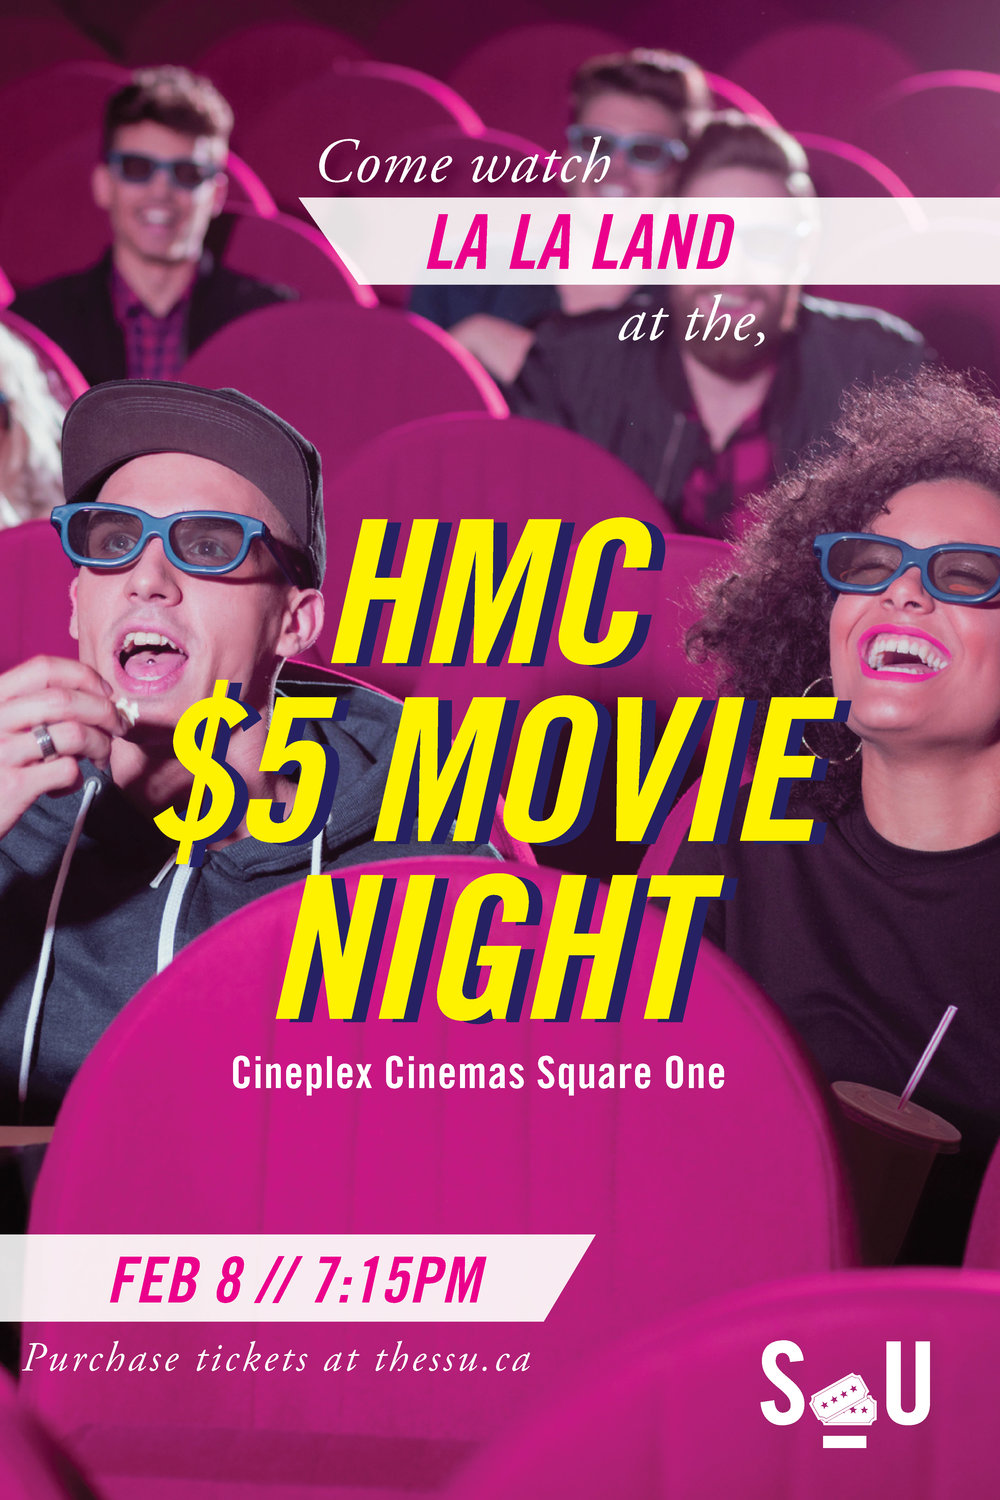 Feb 8 HMC movie night-01.jpg